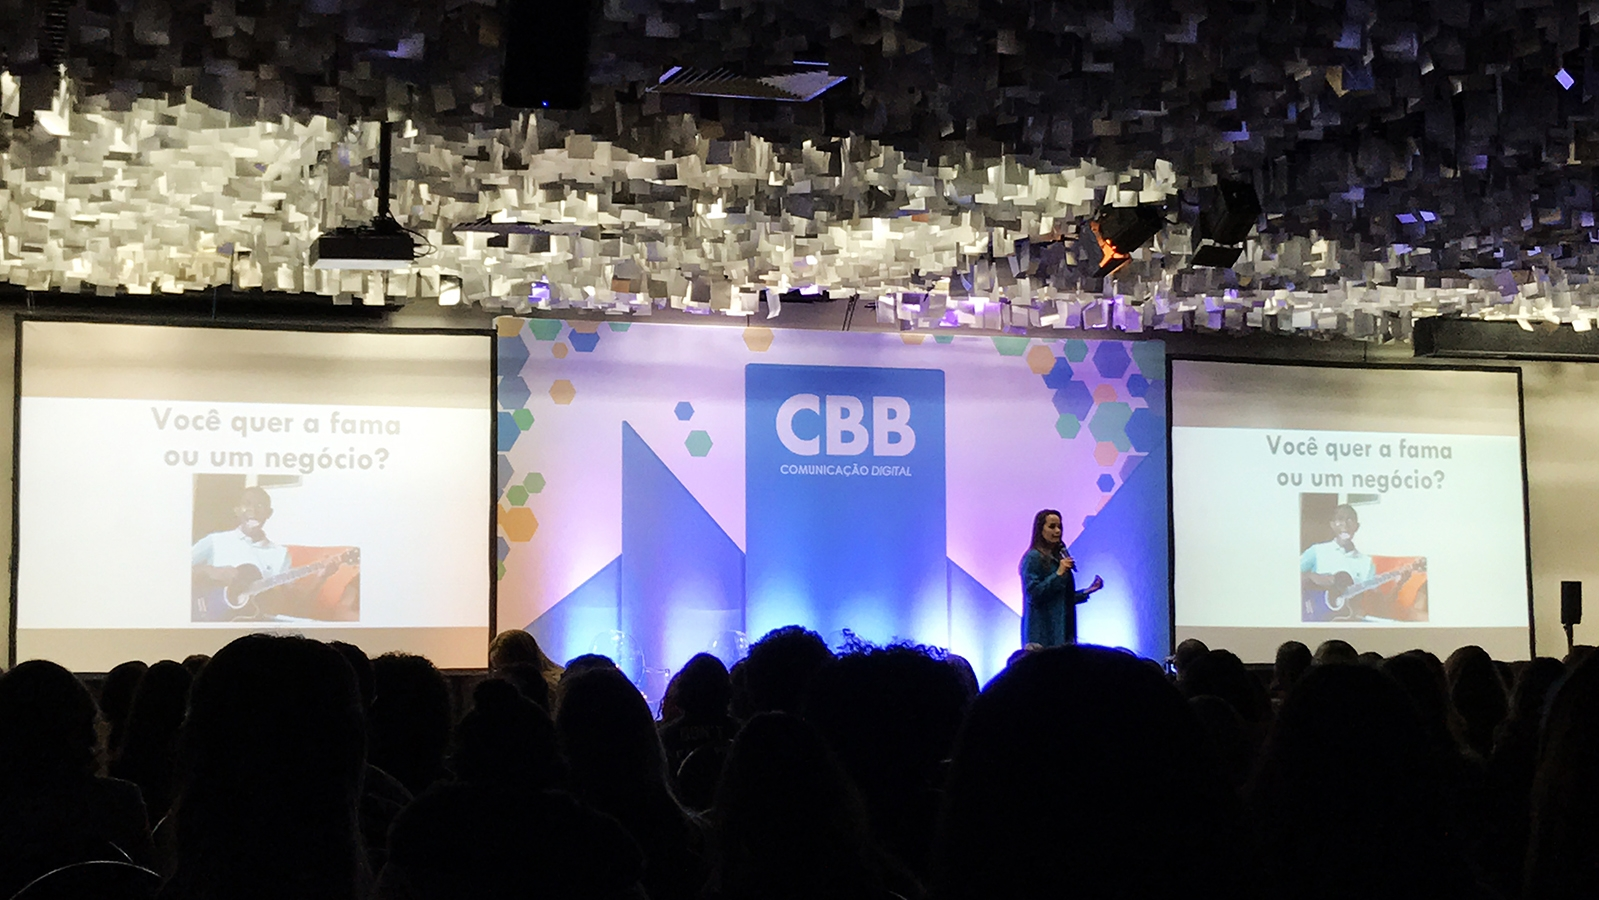 #cnb2017, cbb bloggers, cbb comunicação digital, blogueira, youtuber, digital influencer, giovana quaglio, conferencia nacional de blogs, maksoud plaza, ana jacobs,